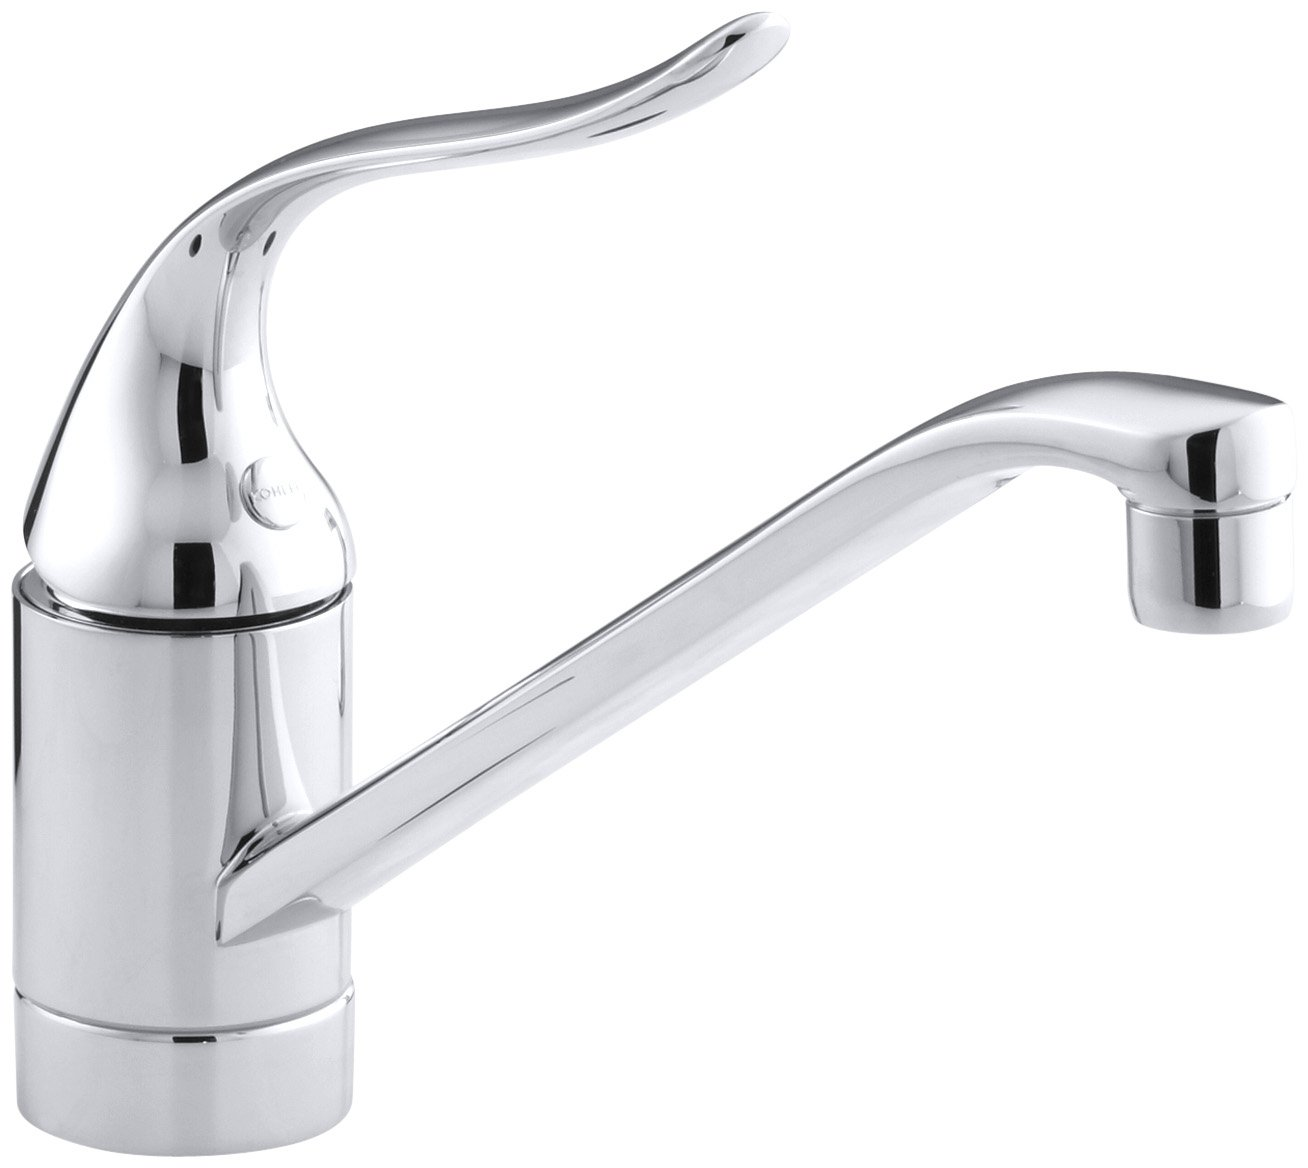 KOHLER 15175-F-CP Coralais R Single-Hole Sink 8-1 2 spout and Lever Handle Kitchen Faucet, Polished Chrome